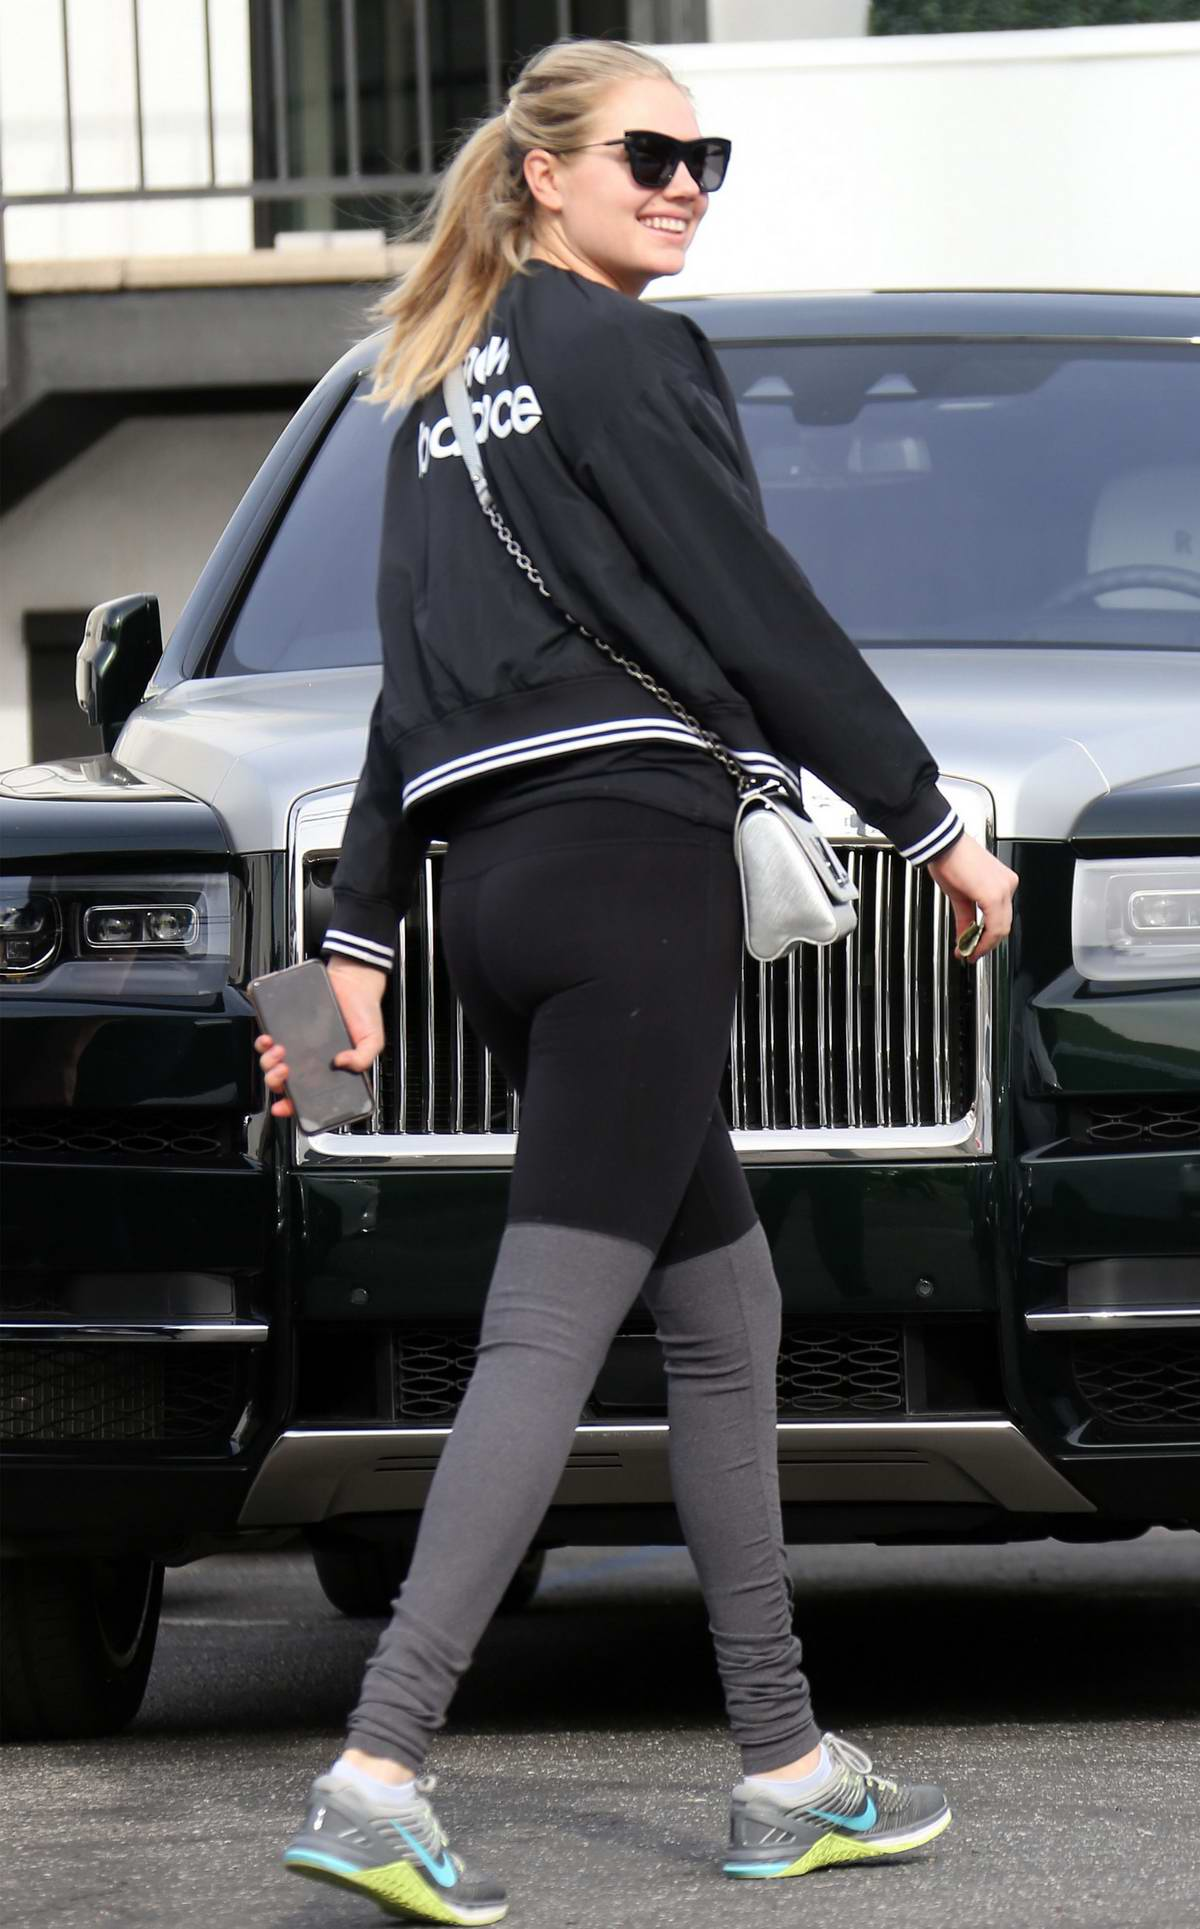 Kate Upton rocks 'New Balance' jacket and two-toned leggings while out on her Rolls-Royce in Beverly Hills, California